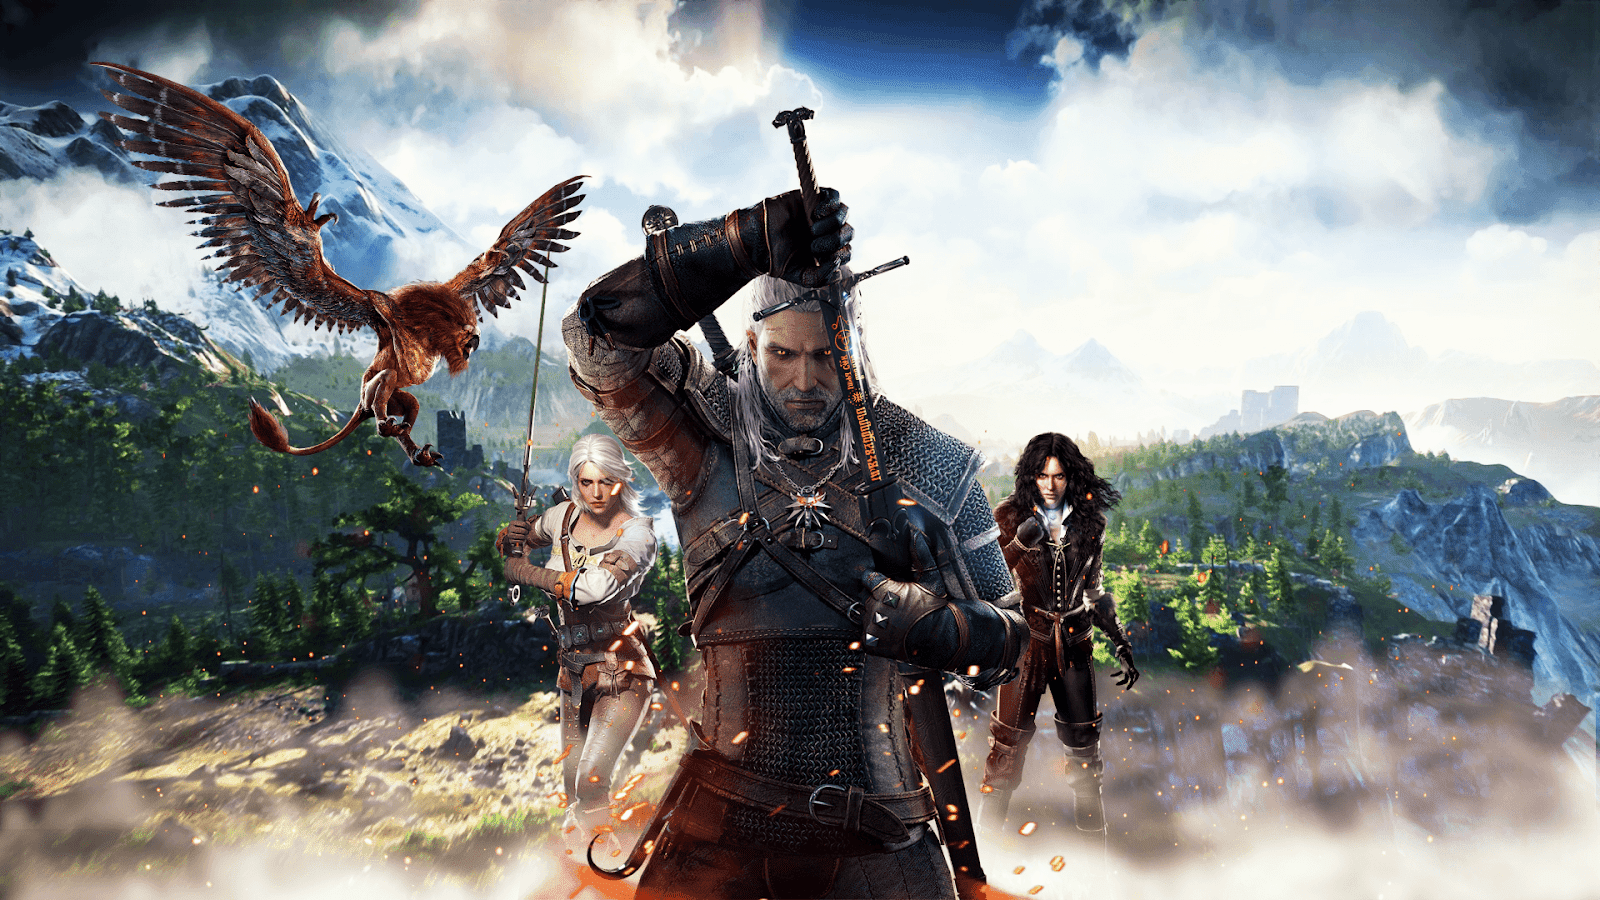 Witcher-wallpaper-download